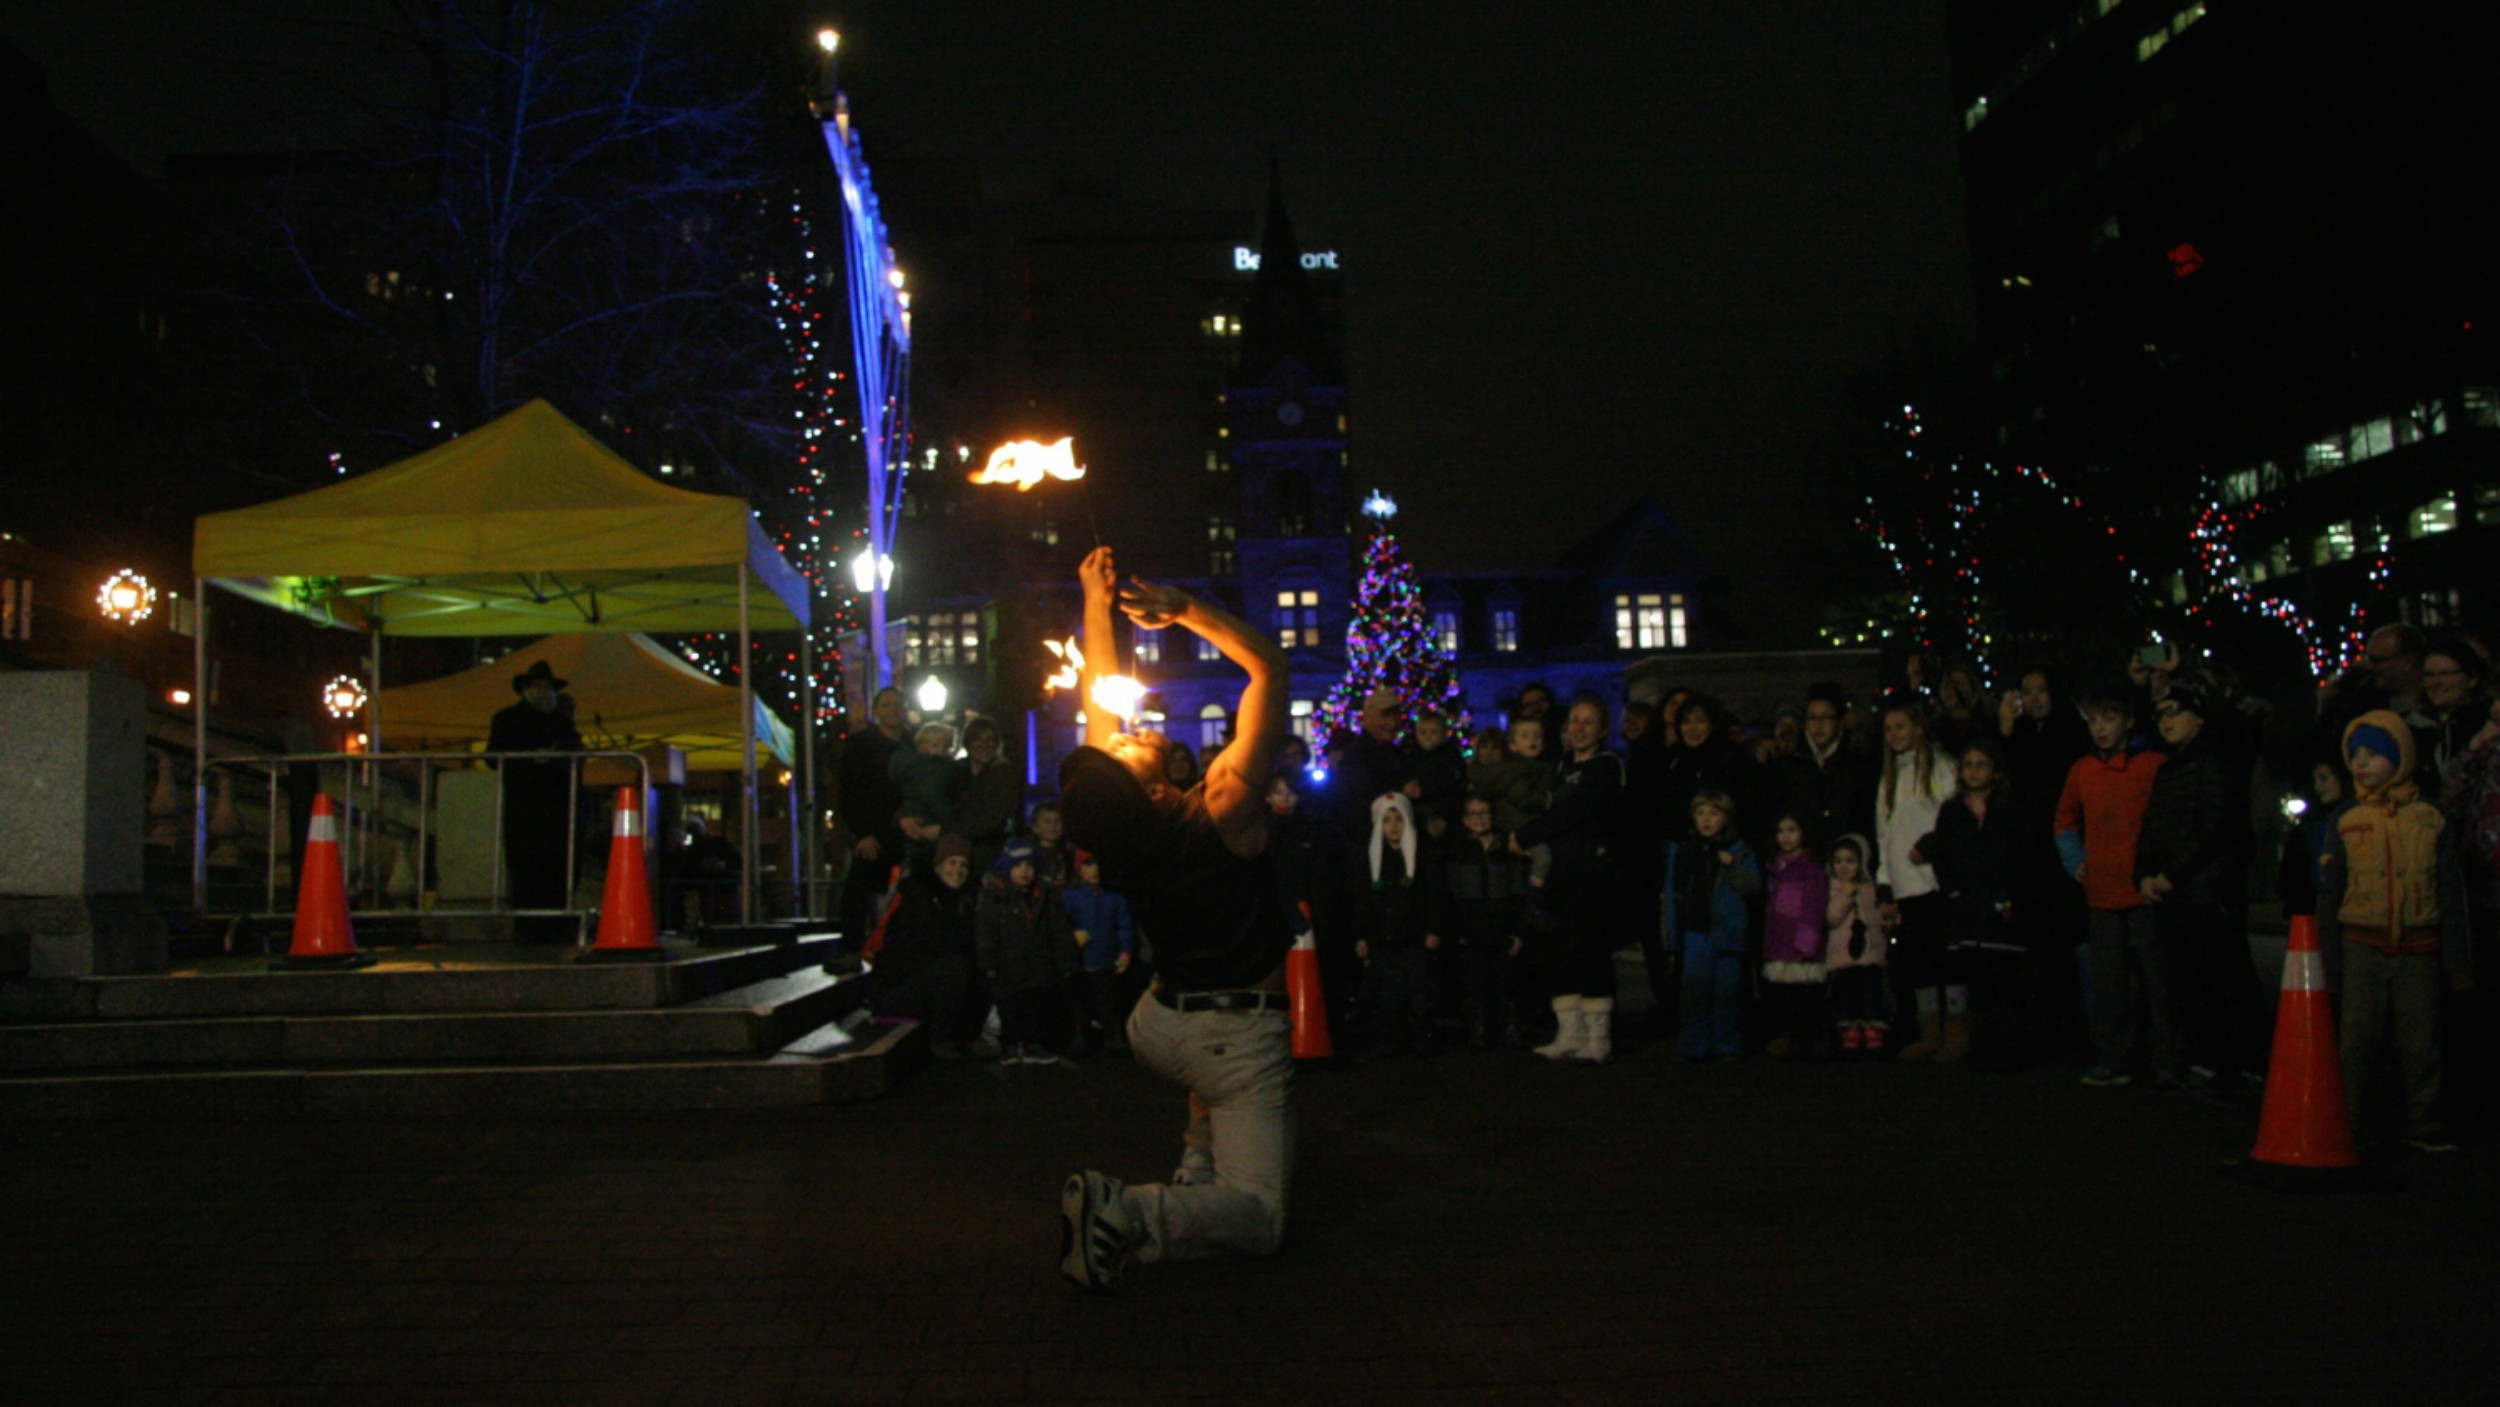 Kyle Scott performs at the side of the menorah at Halifax Grand Parade on Monday night.